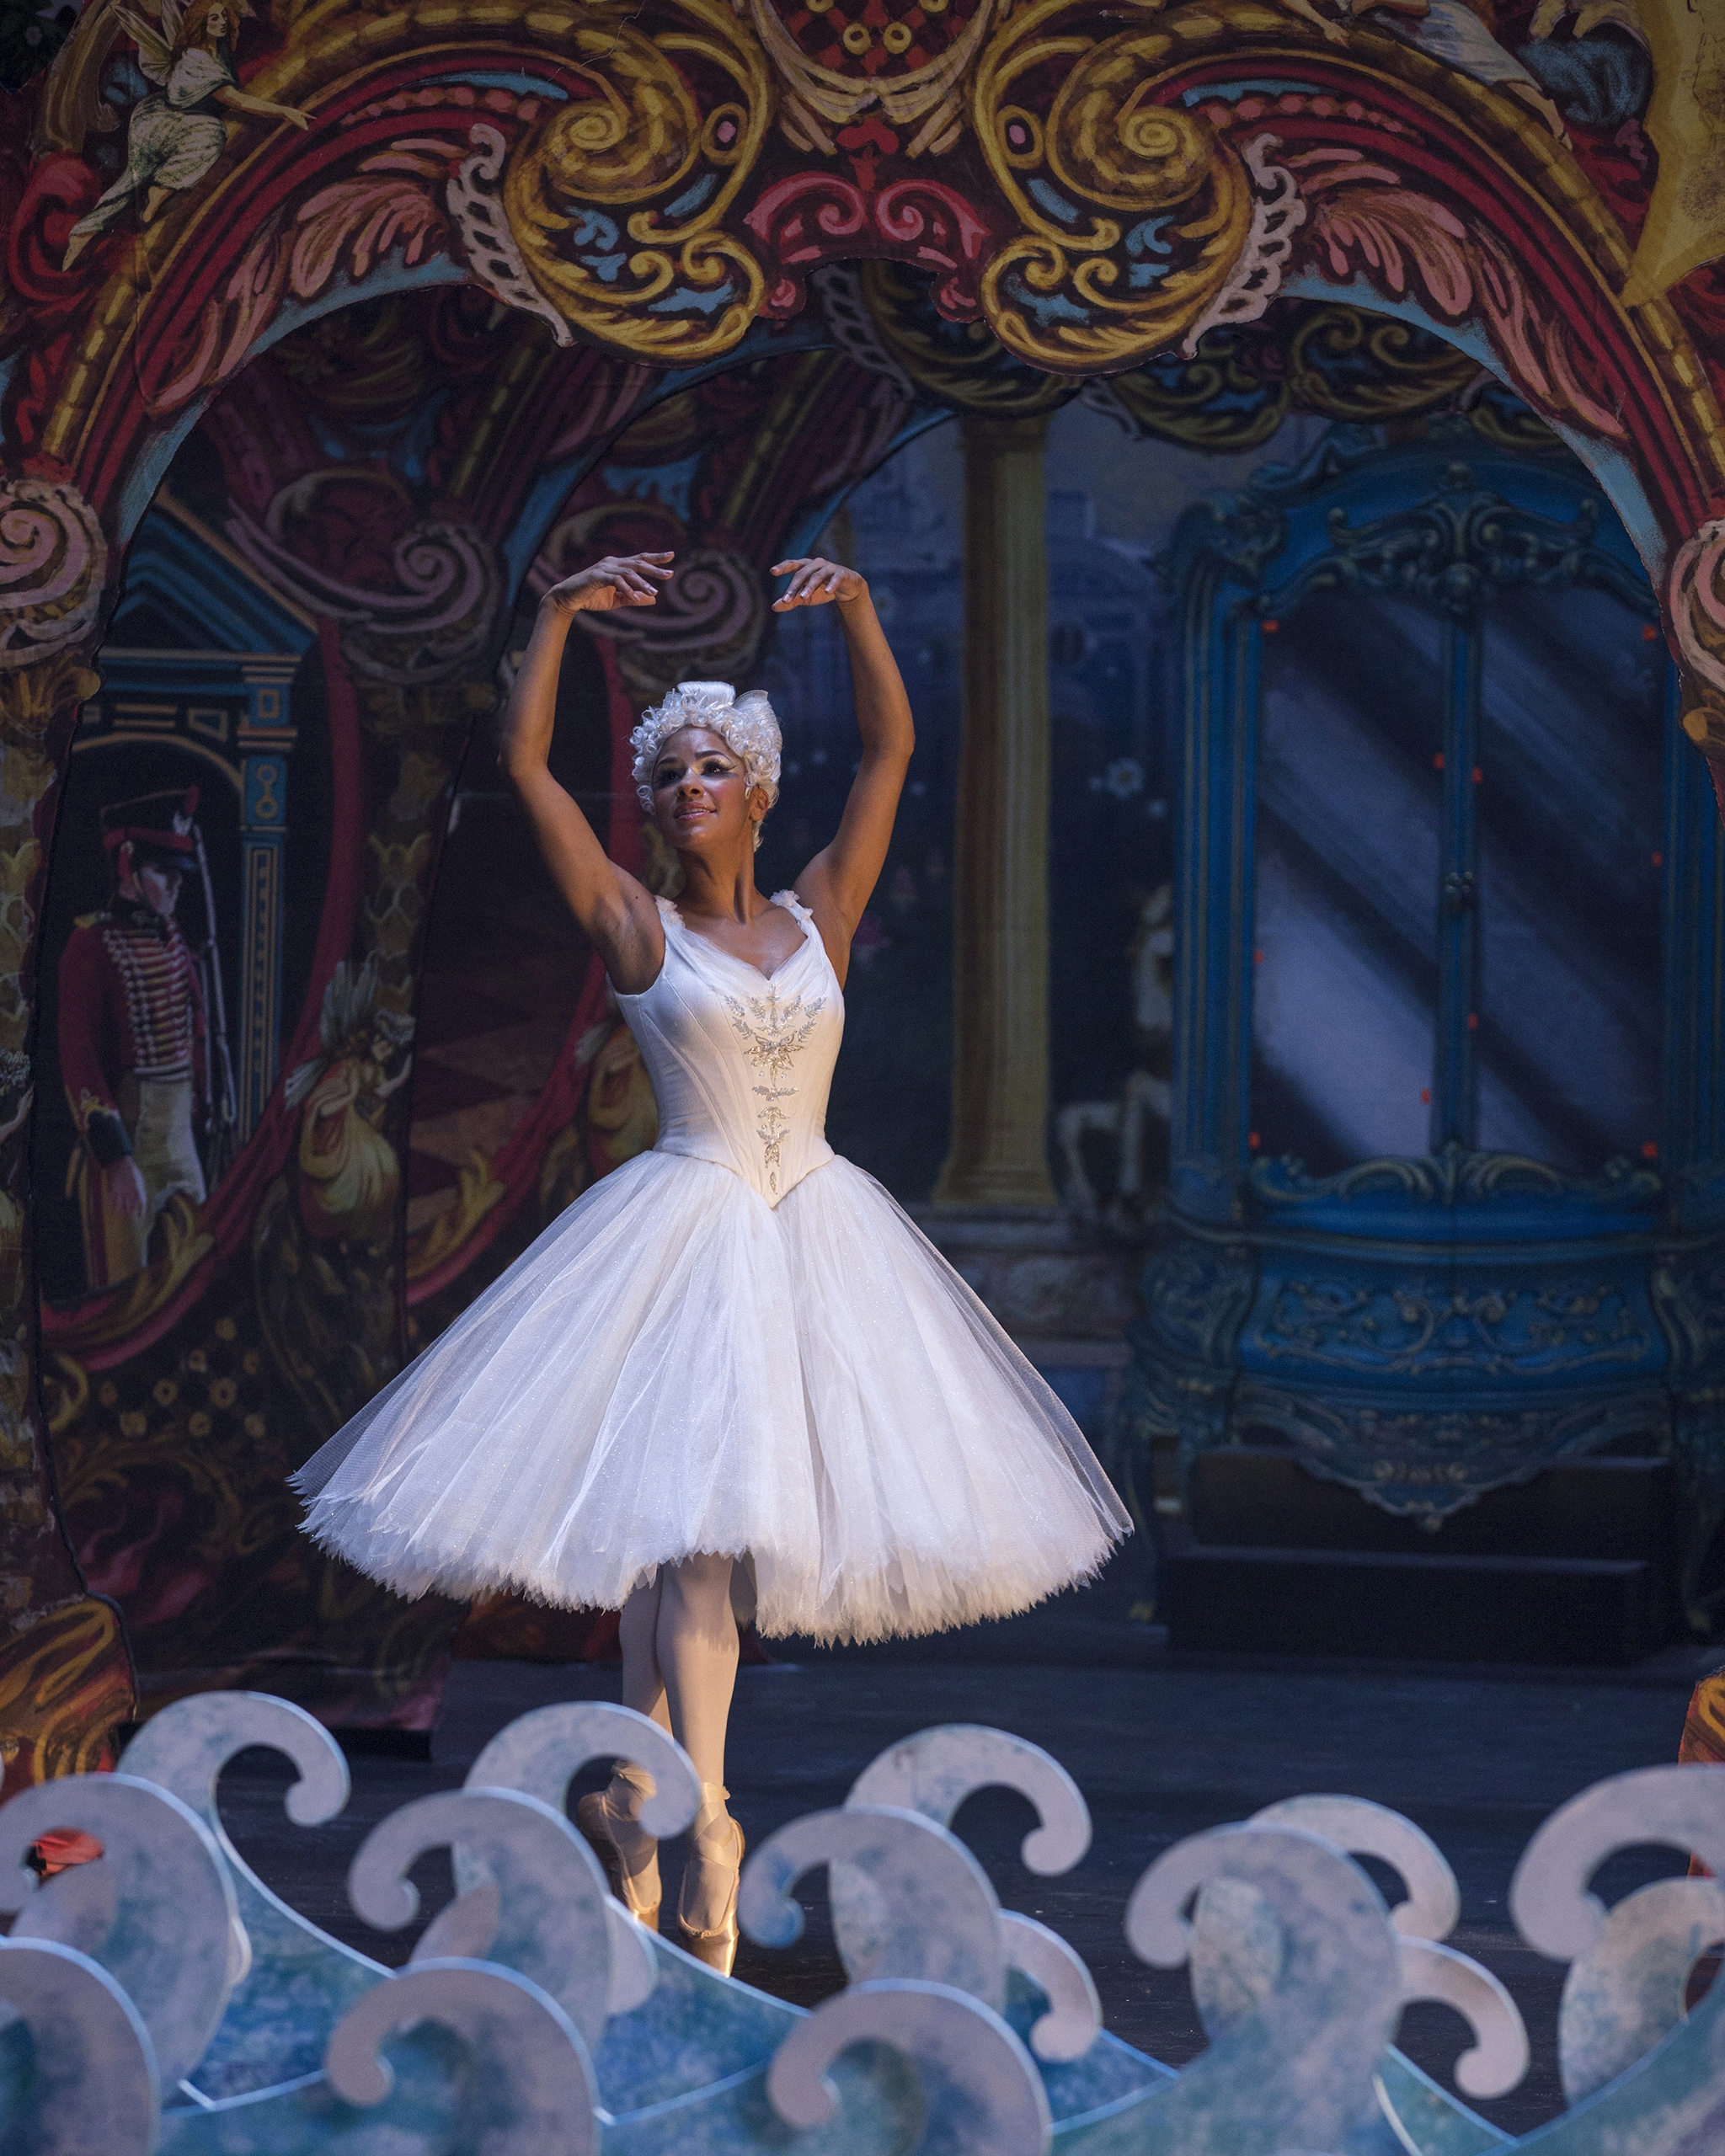 Misty Copeland doing what she does best.